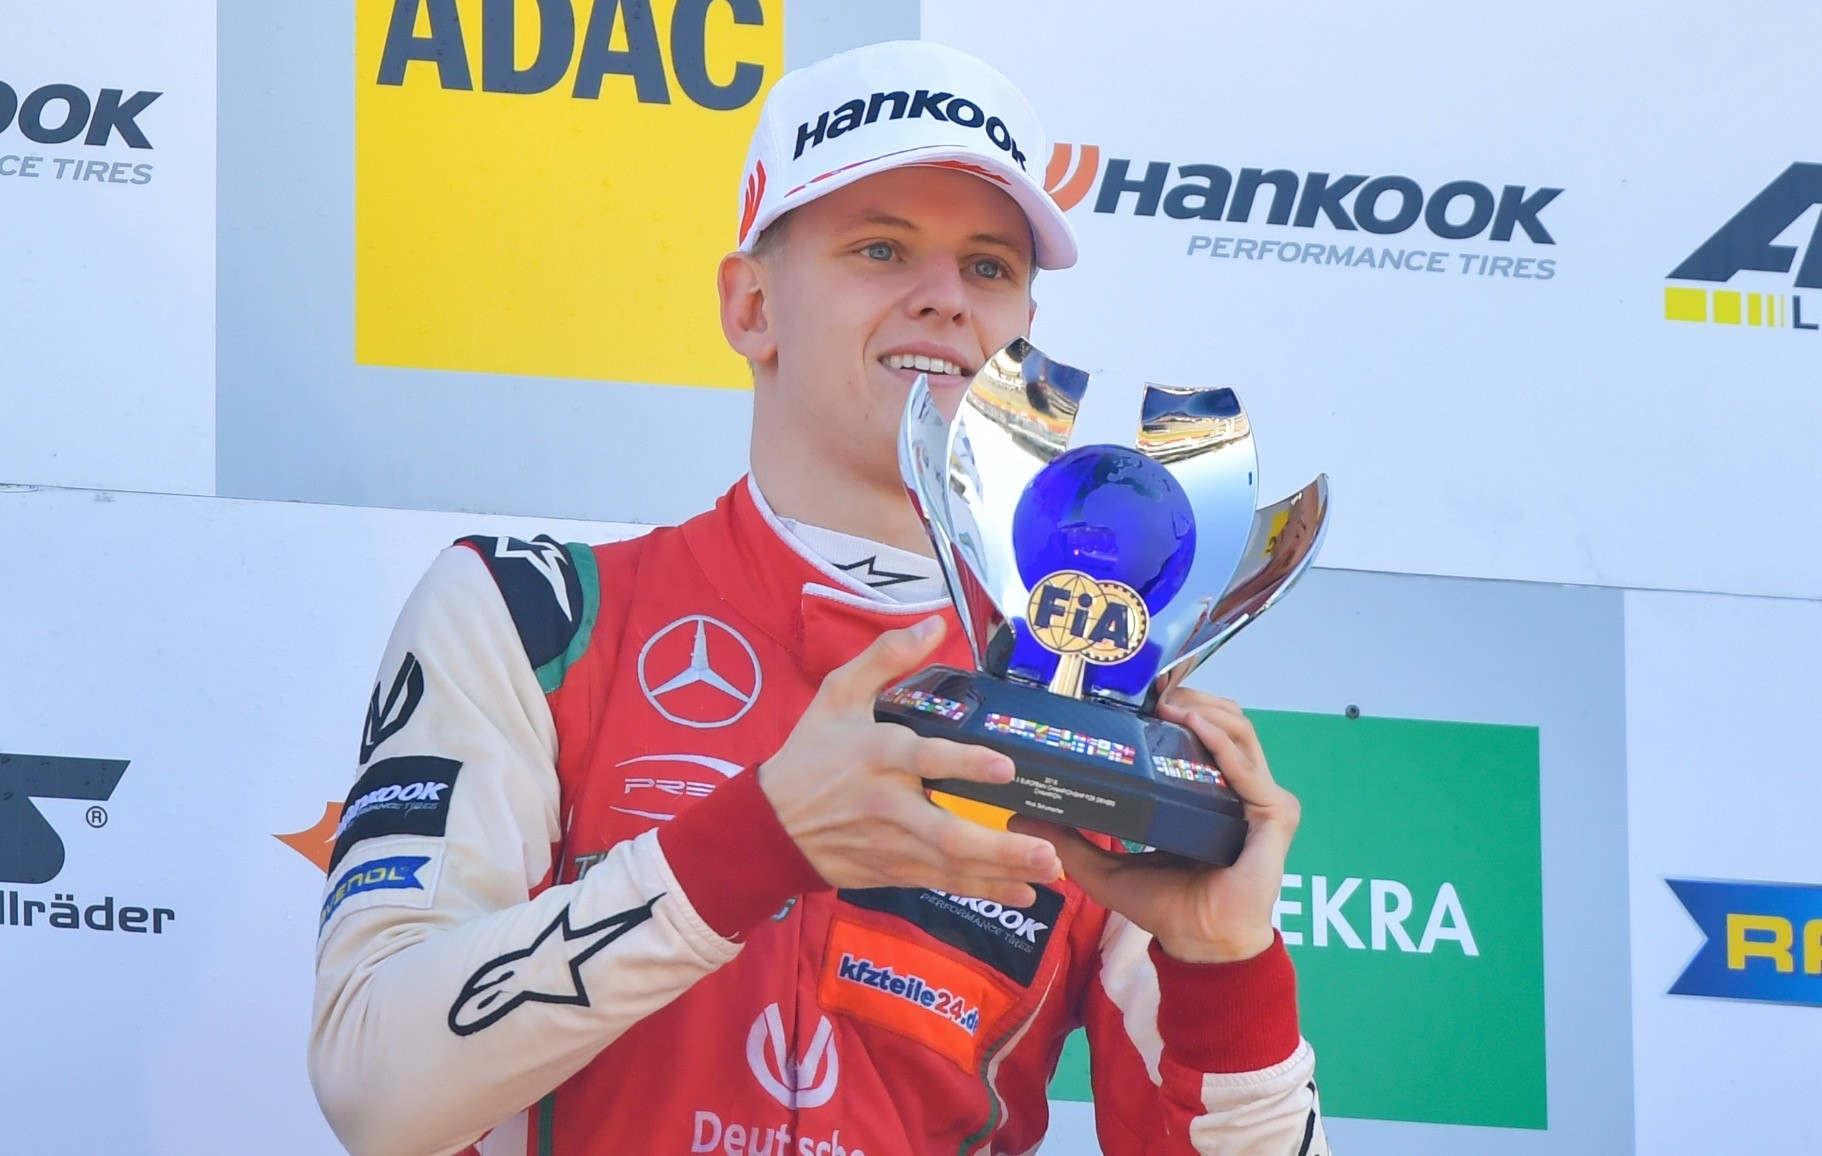 Mick  Schumacher raises the trophy as overall winner in FIA Formula 3 European Championships at the Hockenheim race track, Germany, Oct. 14.